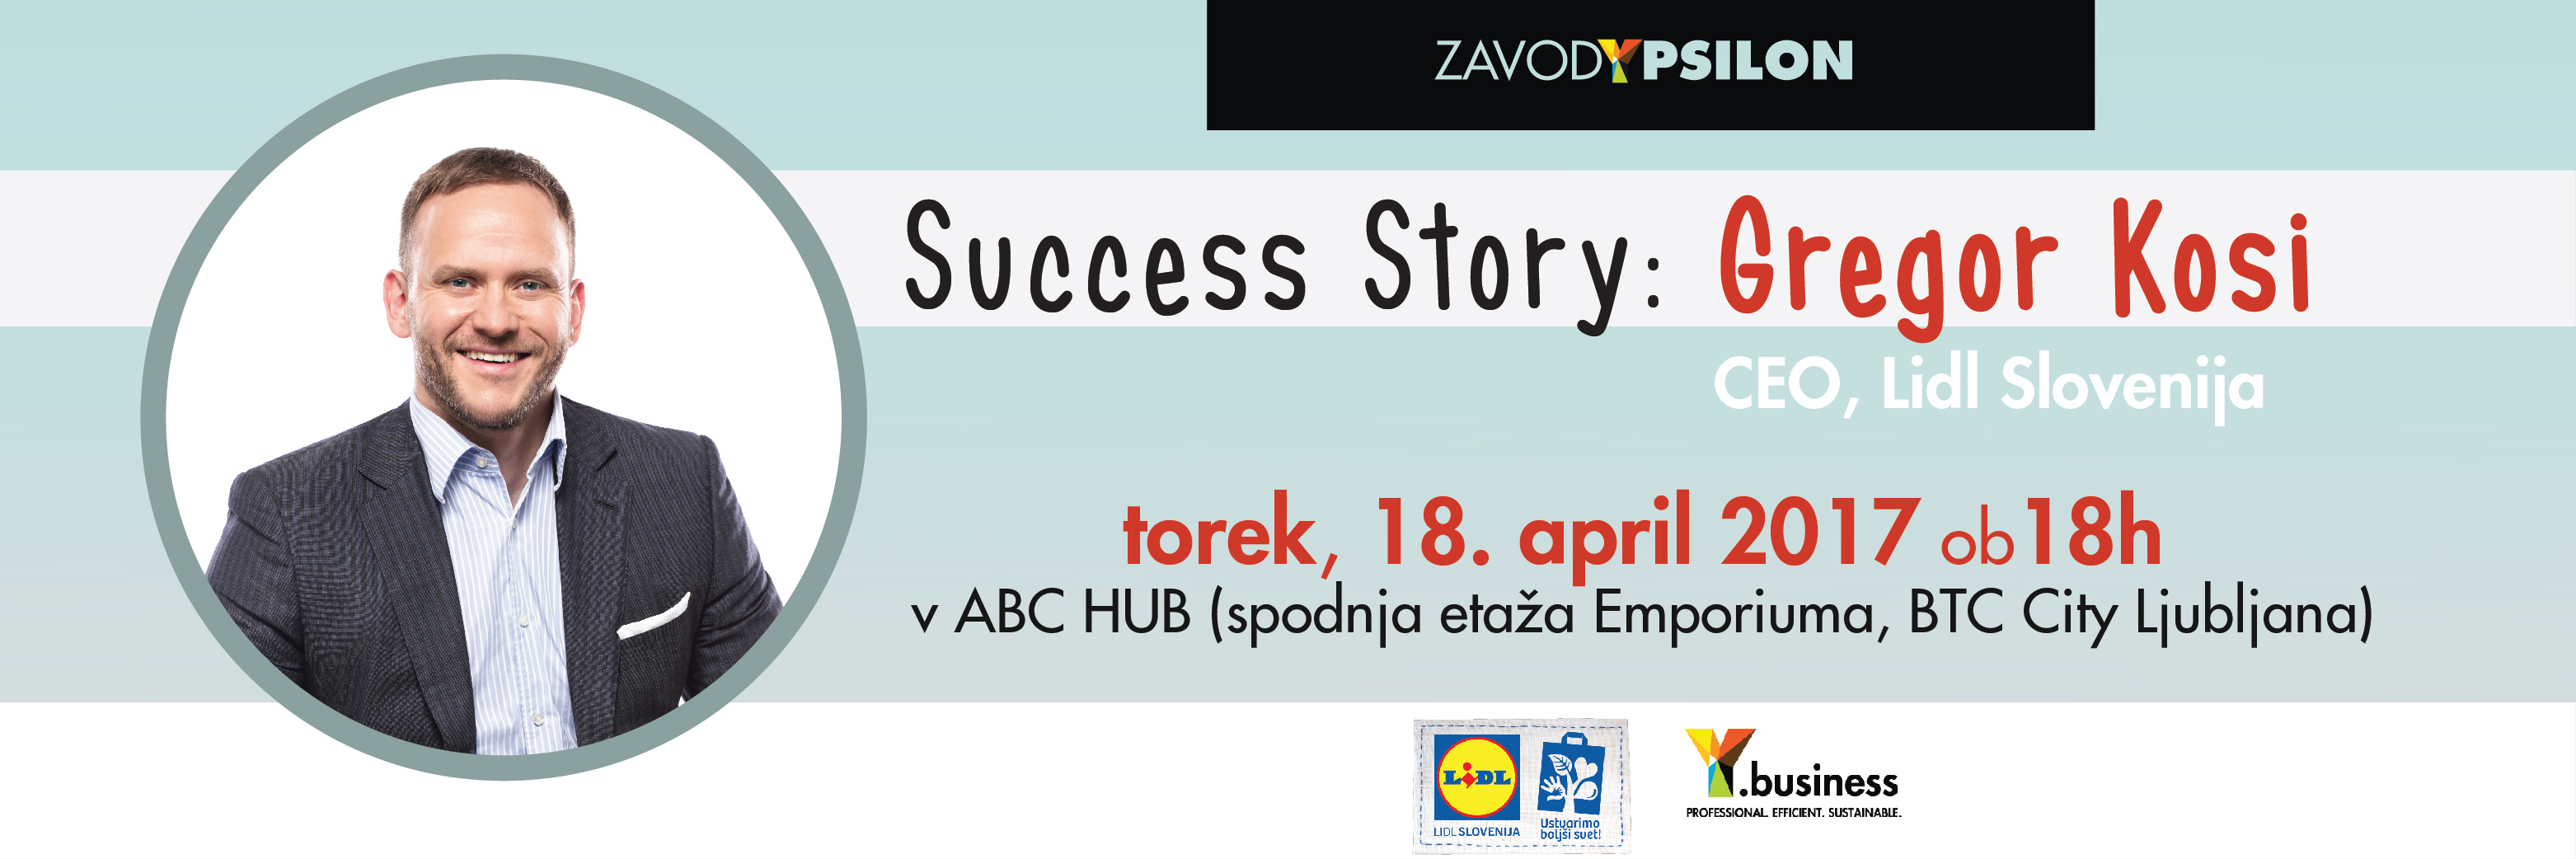 success story kosi 01 02 02 02